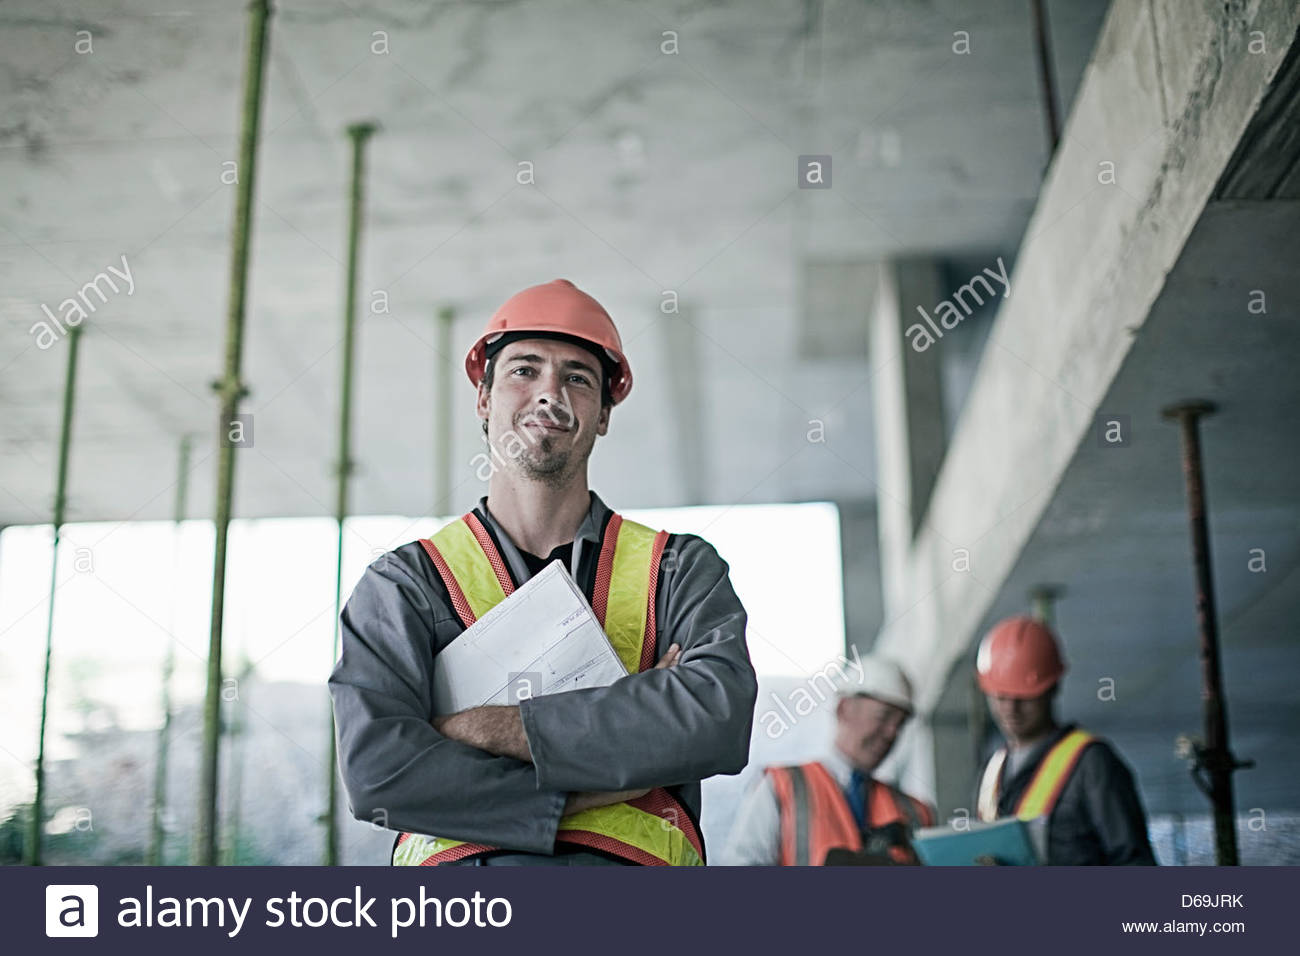 Construction worker smiling on site - Stock Image